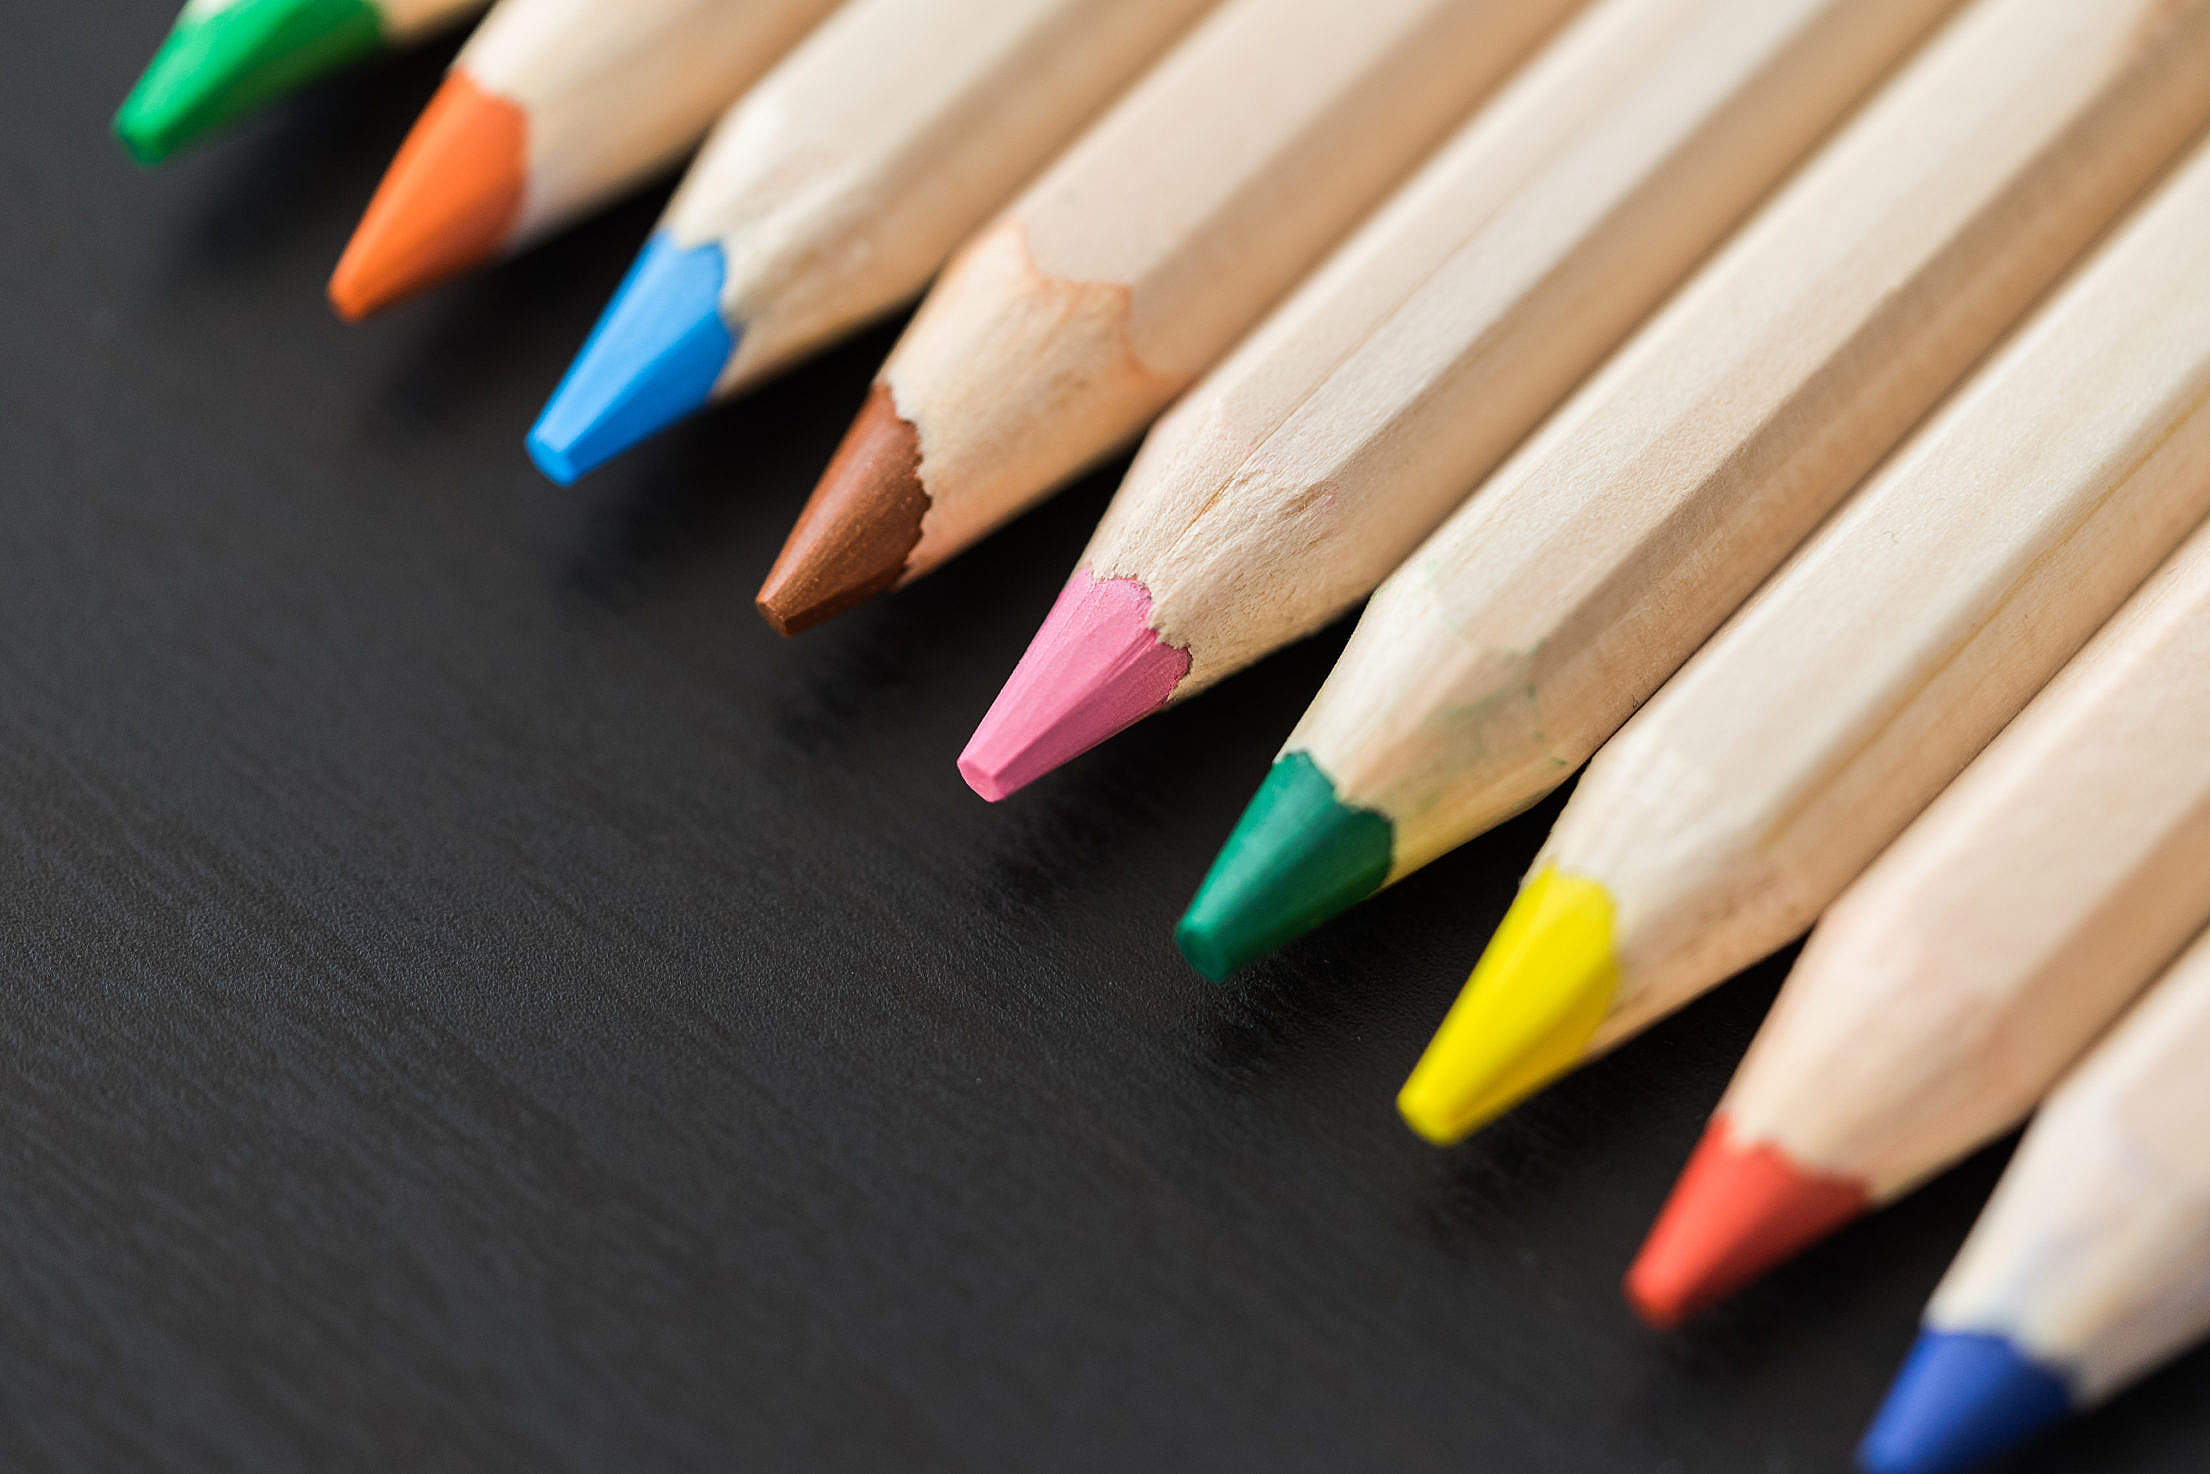 Colored Pencils in a Row on Black Desk Close Up Free Stock Photo